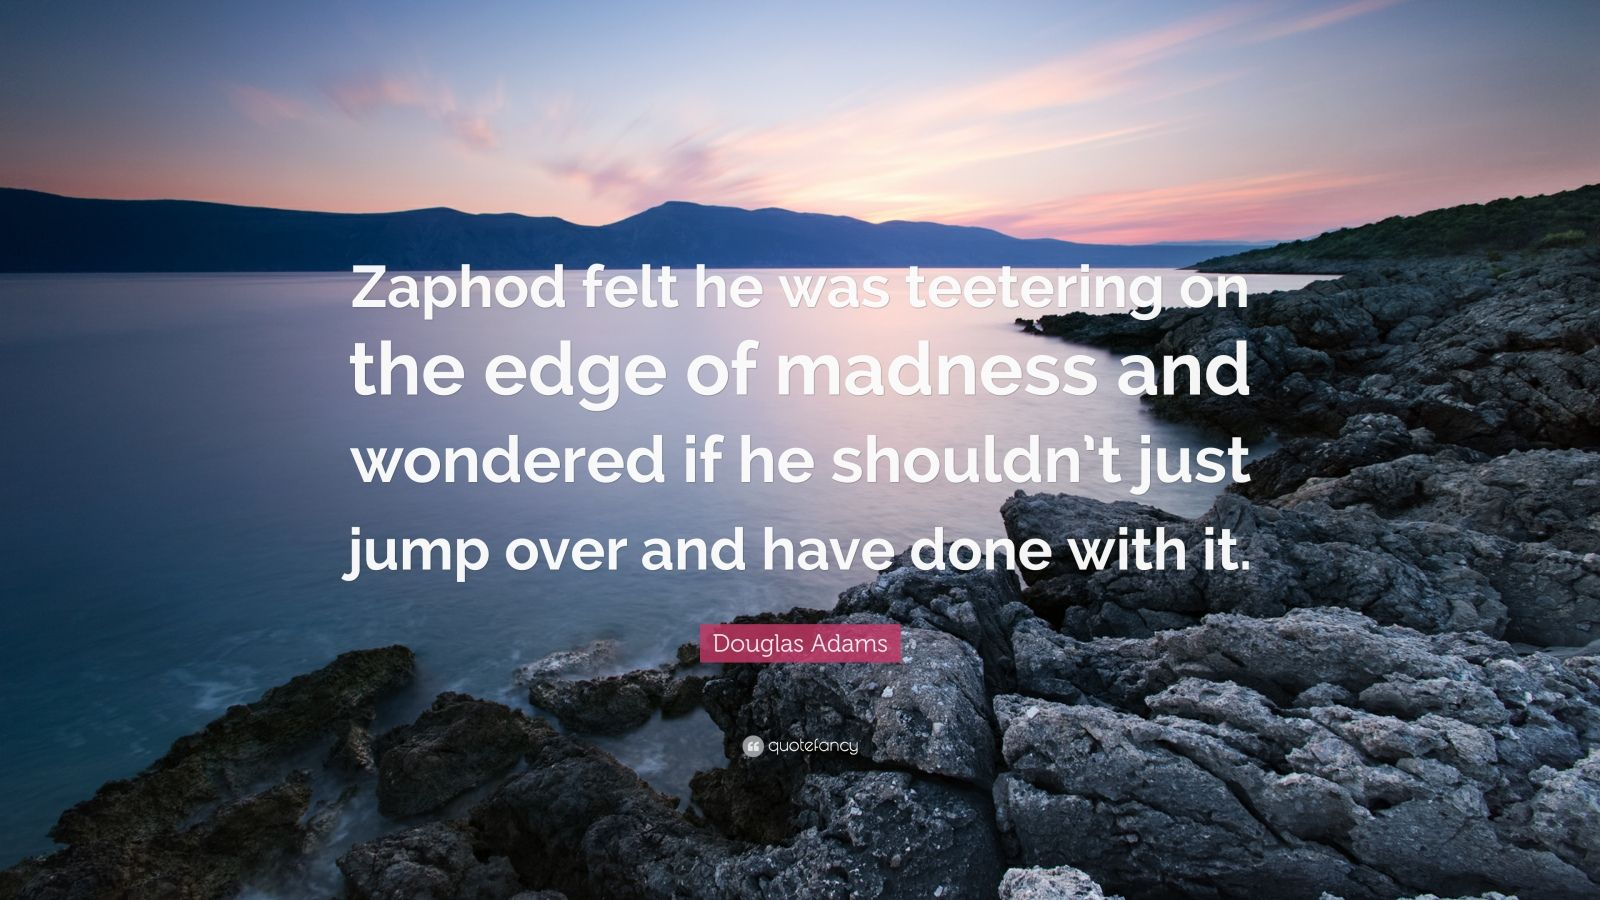 "Douglas Adams Quote: ""Zaphod felt he was teetering on the edge of madness and wondered if he shouldn't just jump over and have done with it."""